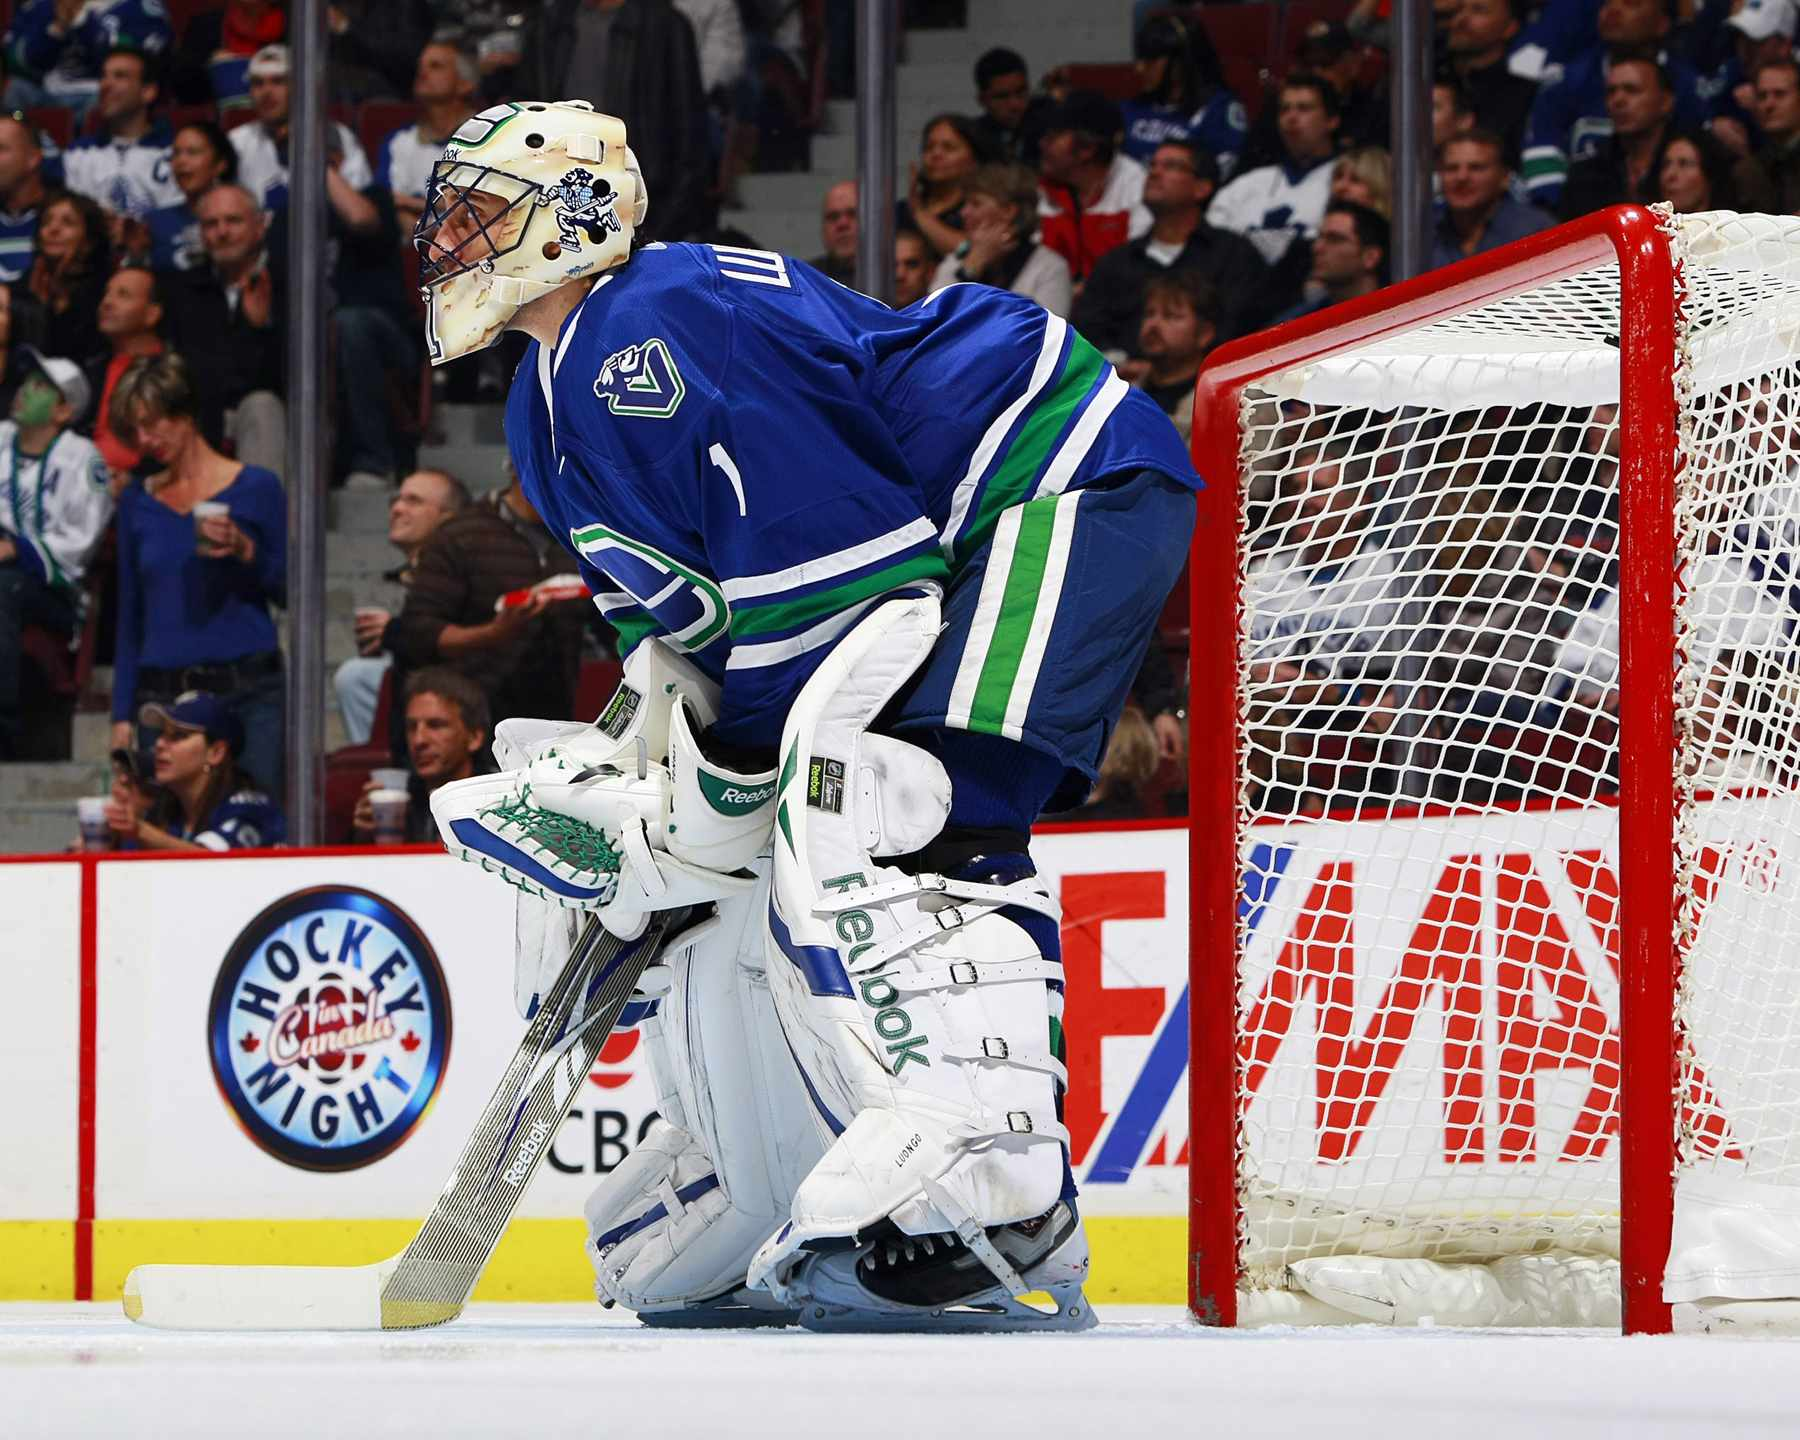 Luongo Regrets Post Game 5 Comment Criticizing Thomas Canucksarmy